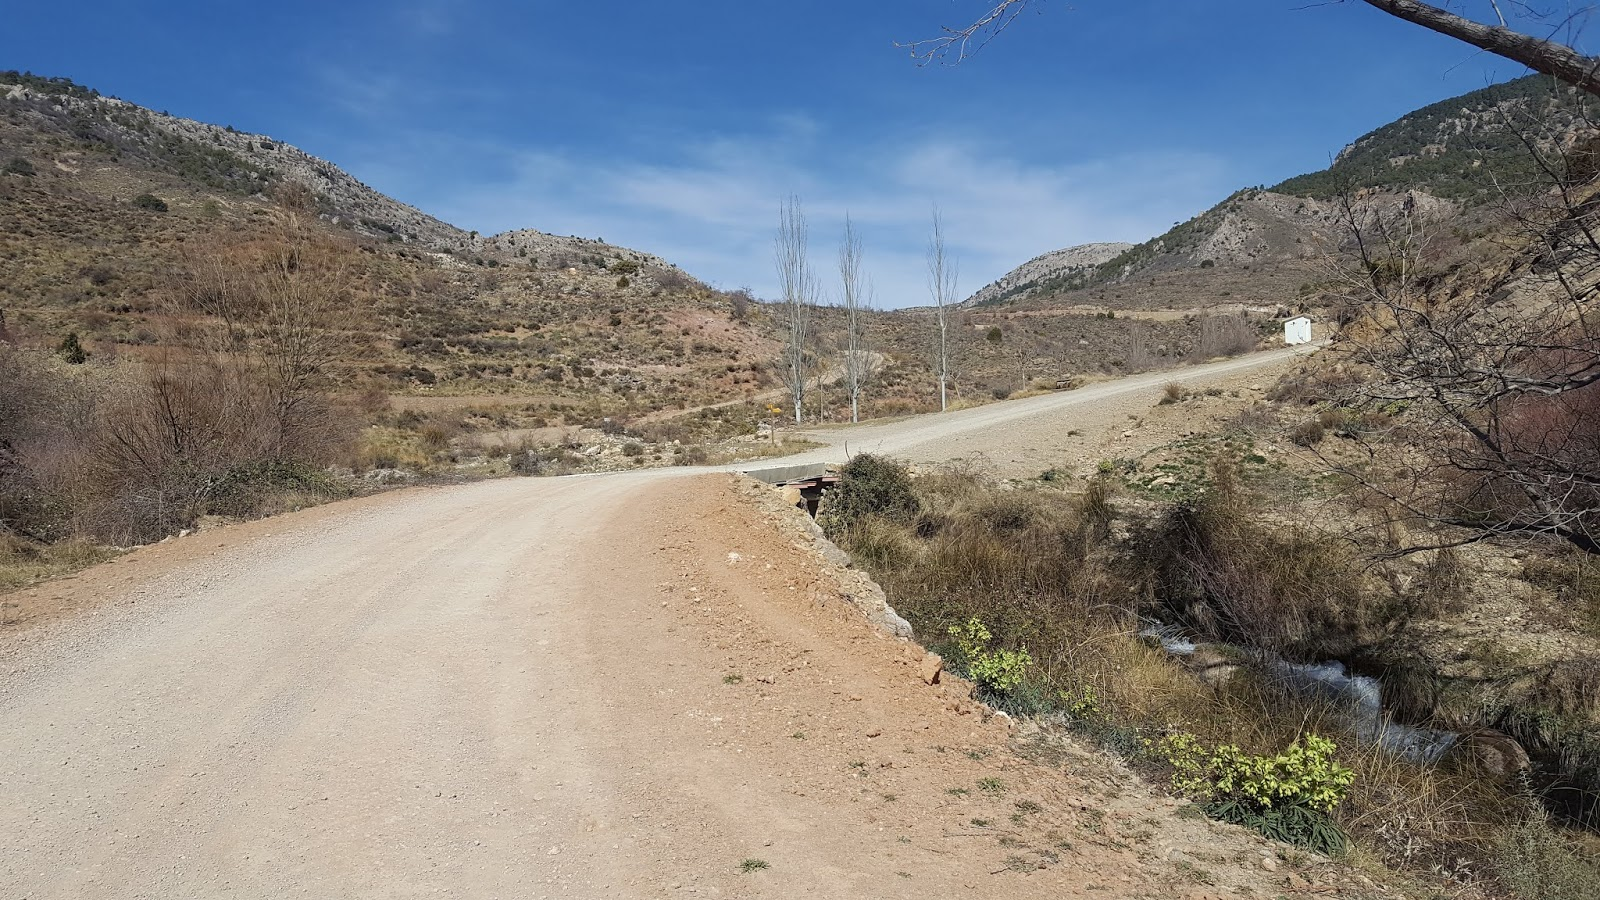 Gravel road to Javalambre Astrophysical Observatory crossing the River Arcos